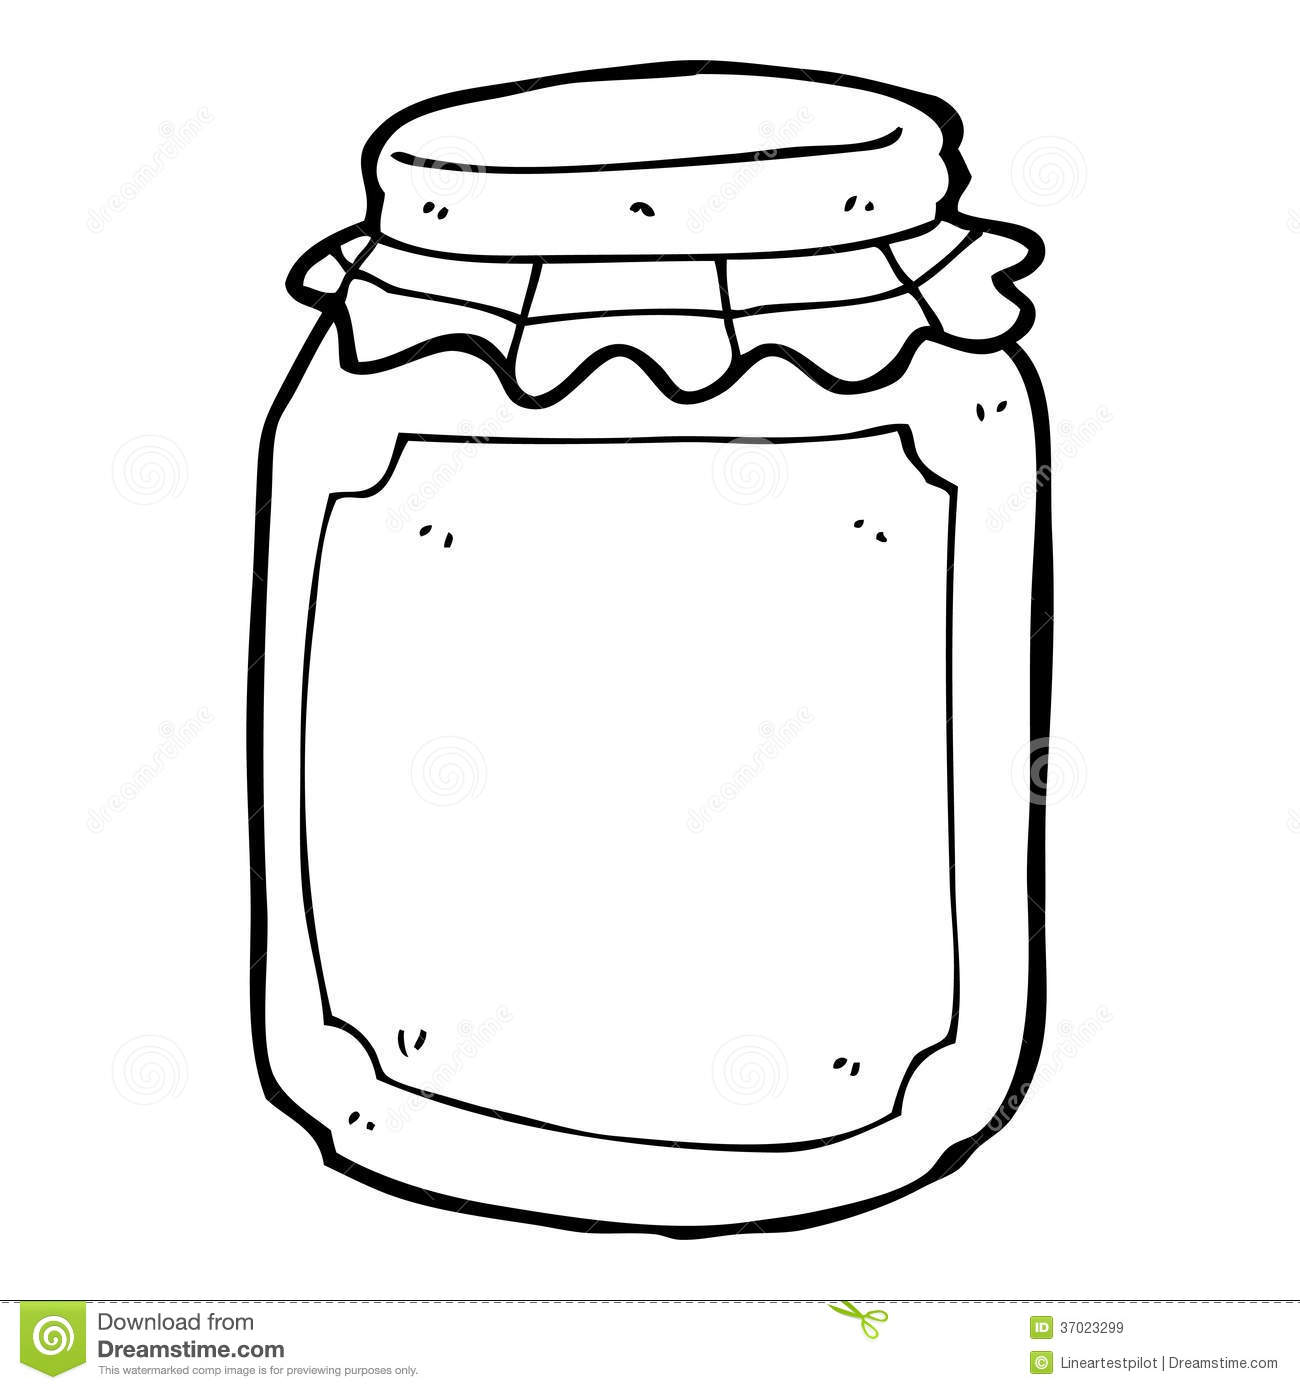 Jar Black And White Clipart | galleryhip.com - The Hippest Galleries!